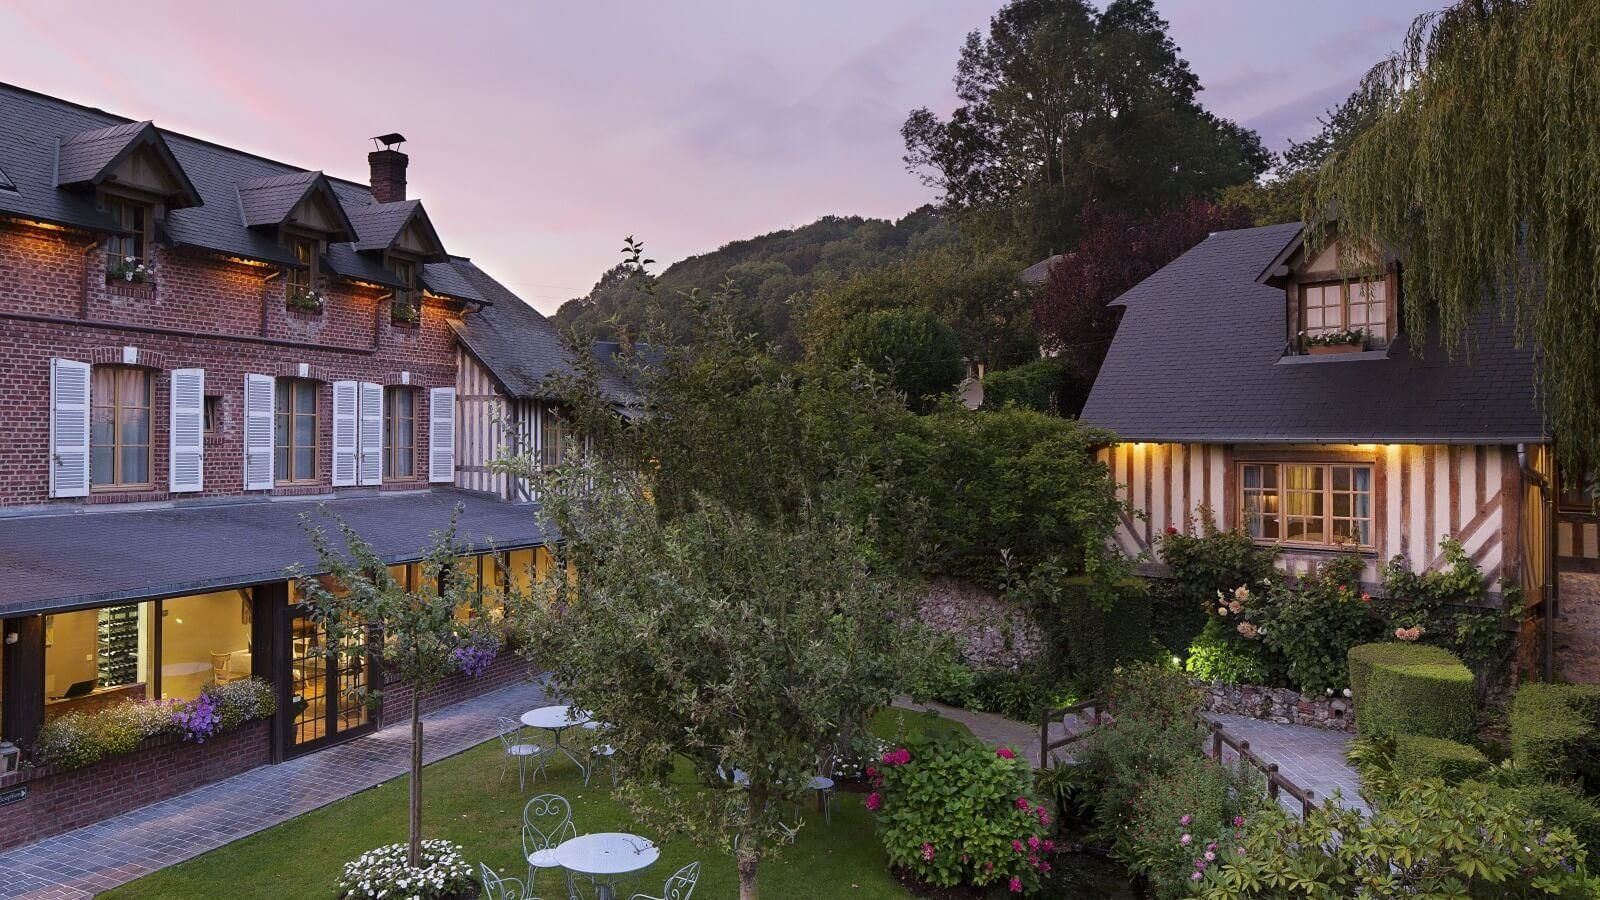 Hotel auberge de la source charm hotel normandy for Auberge le jardin de la source